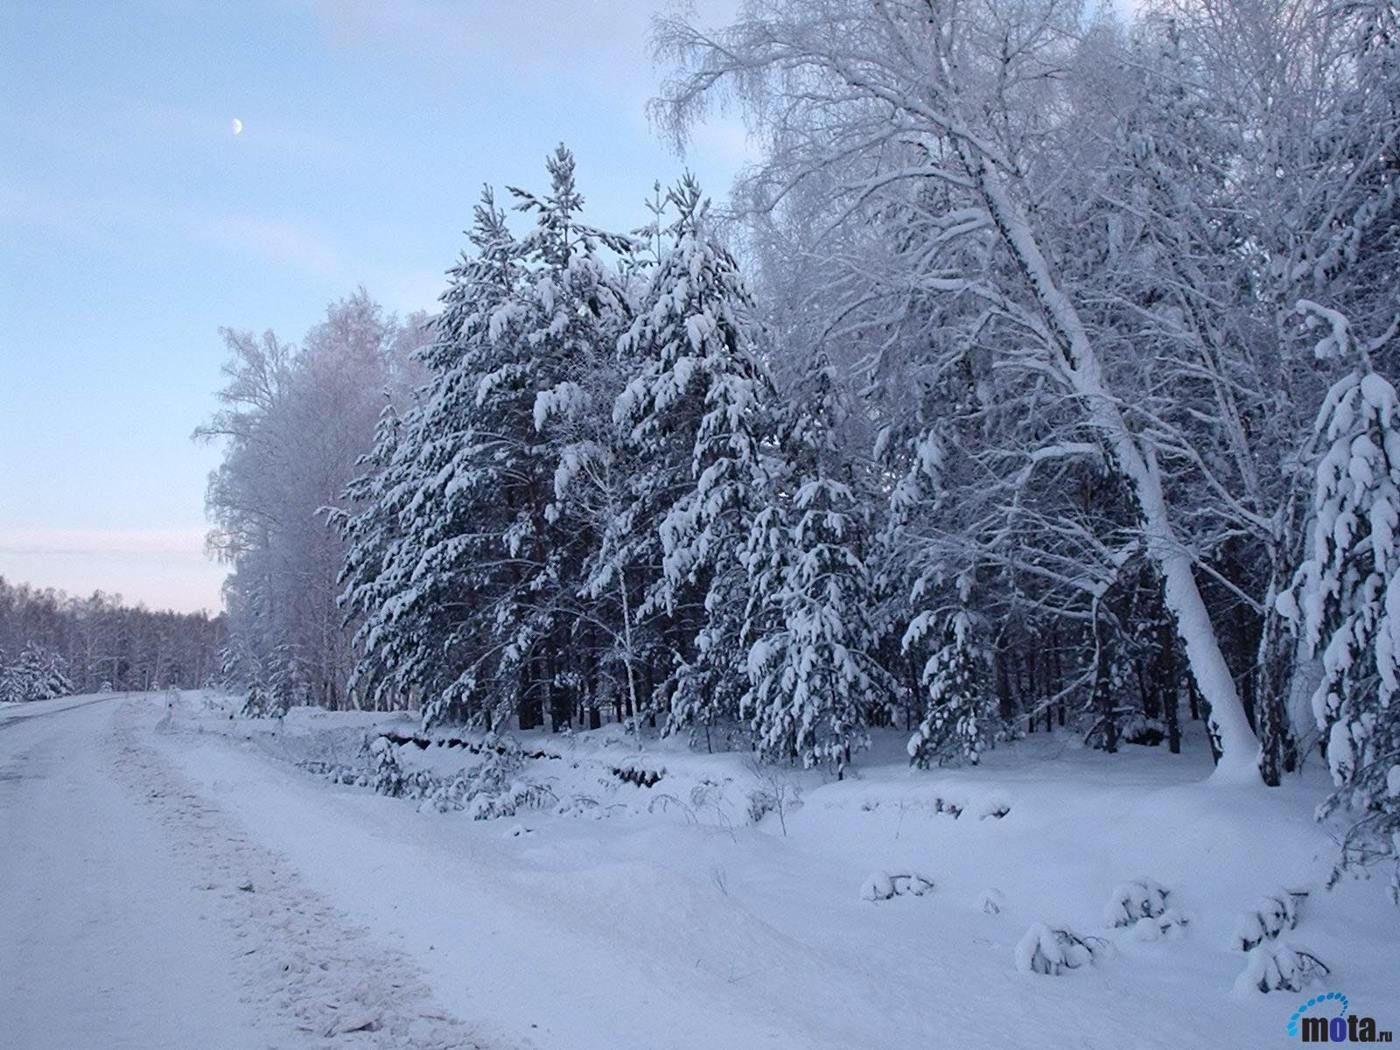 backgrounds 100 try it now related wallpapers nature tree snow 1400x1050